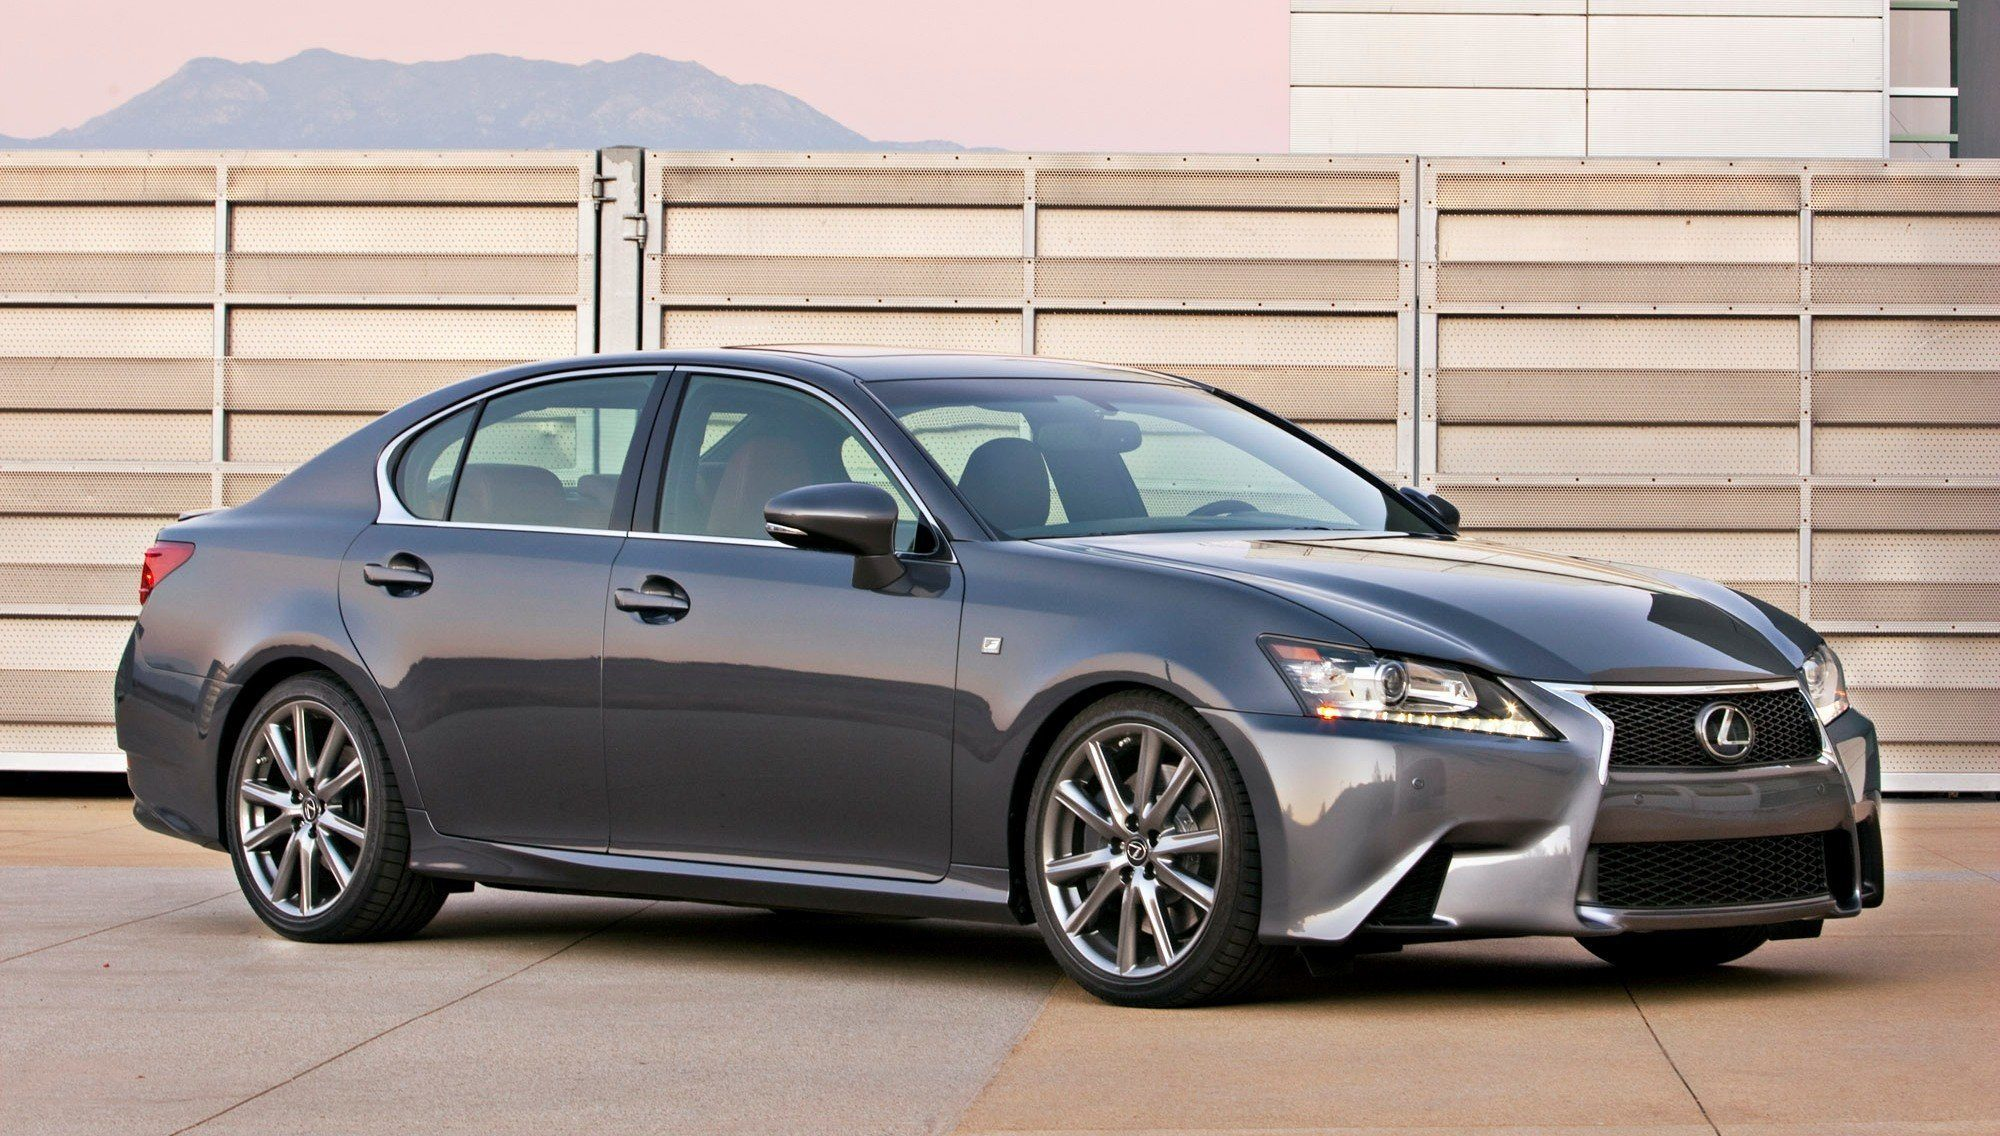 2014 Lexus GS350 and GS F Sport Buyers Guide Info 21